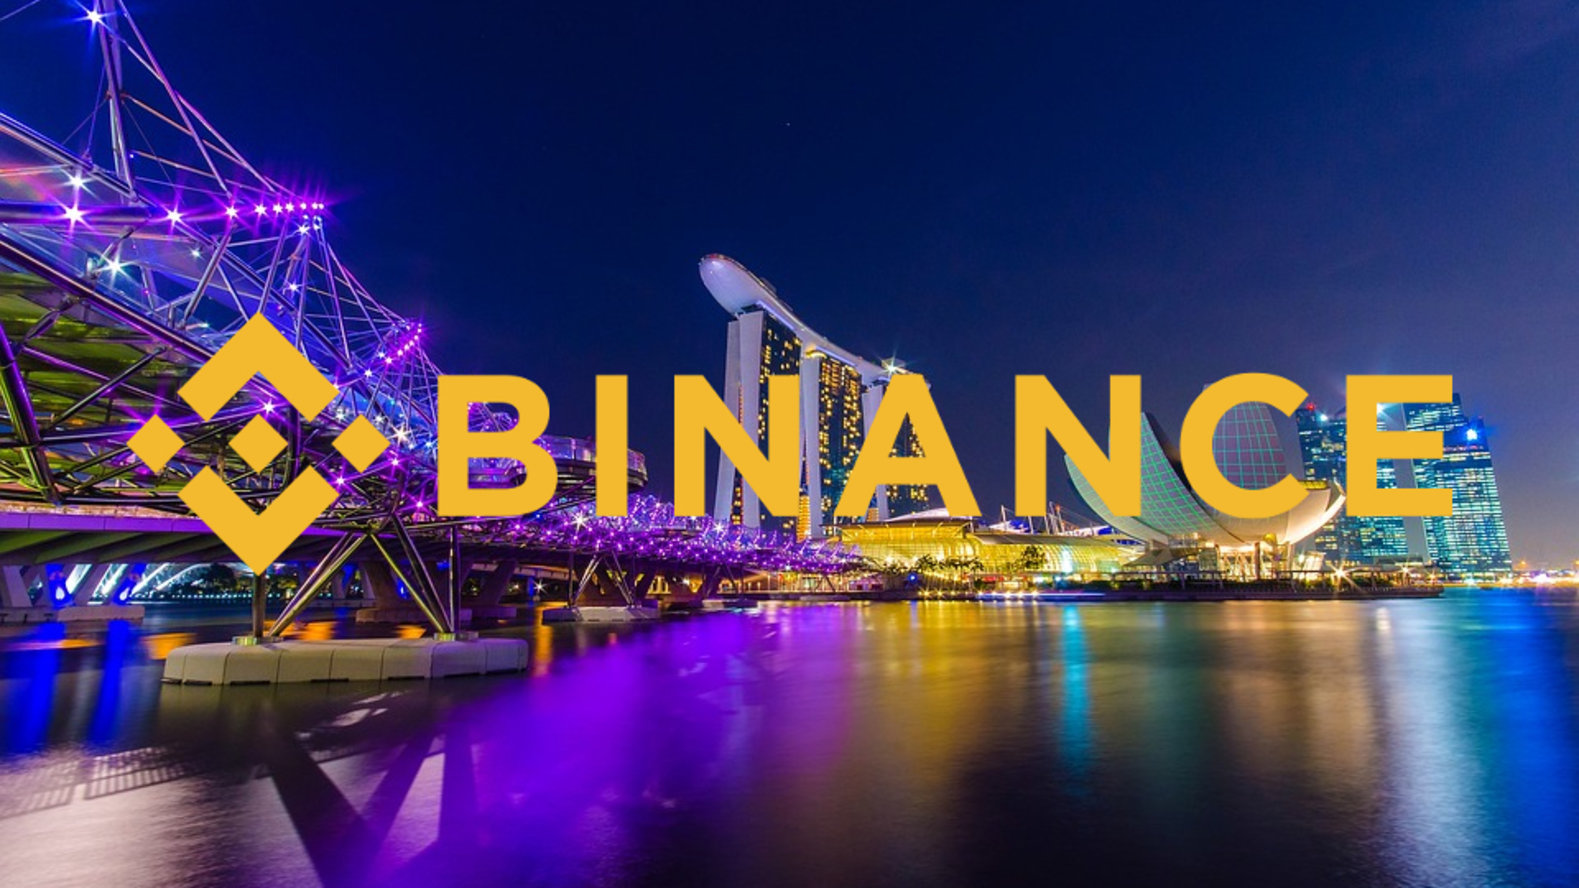 Binance to officially launch its new crypto-exchange in Singapore